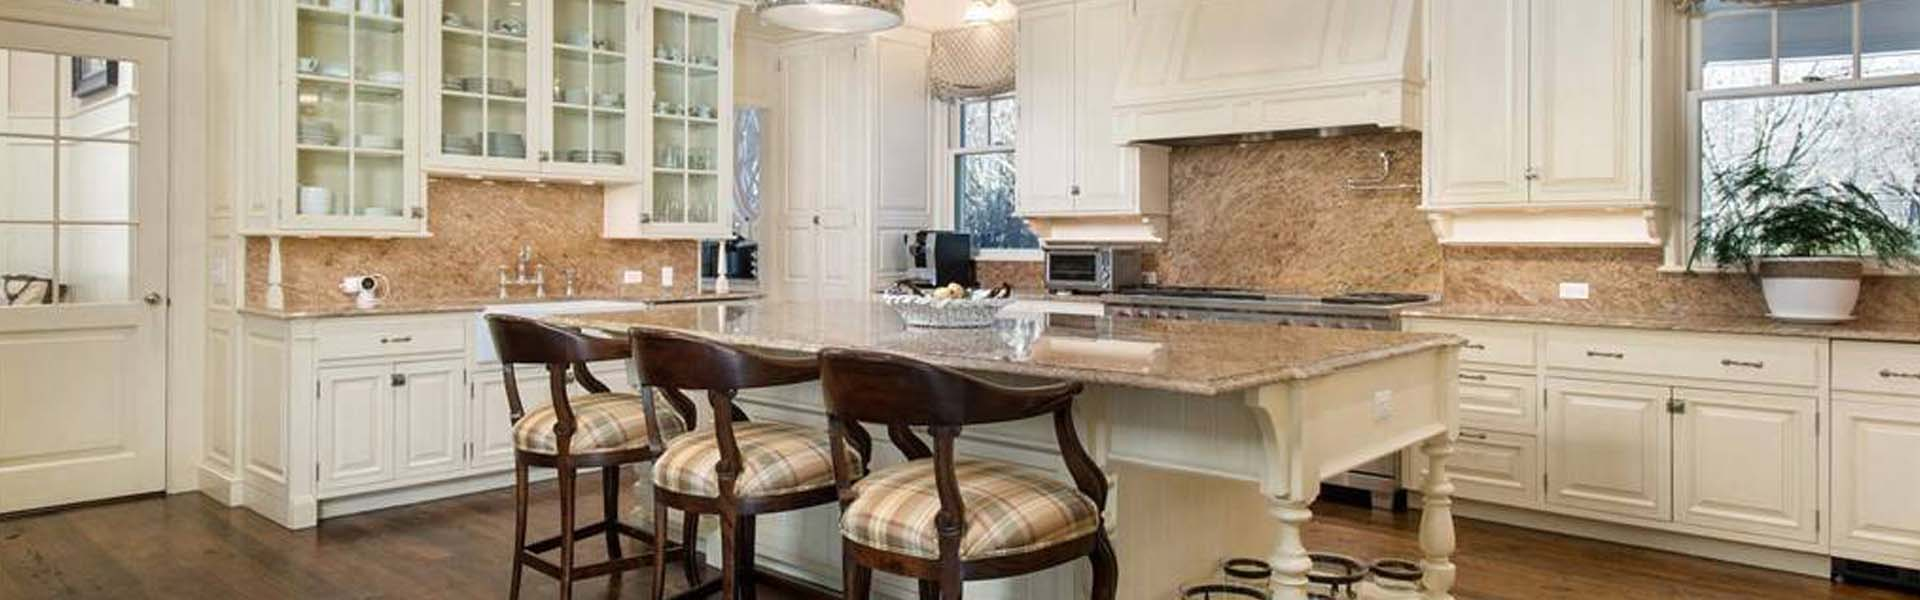 kitchen design tips top ideas for your new kitchen renovation monmouth county NJ kitchen remodel